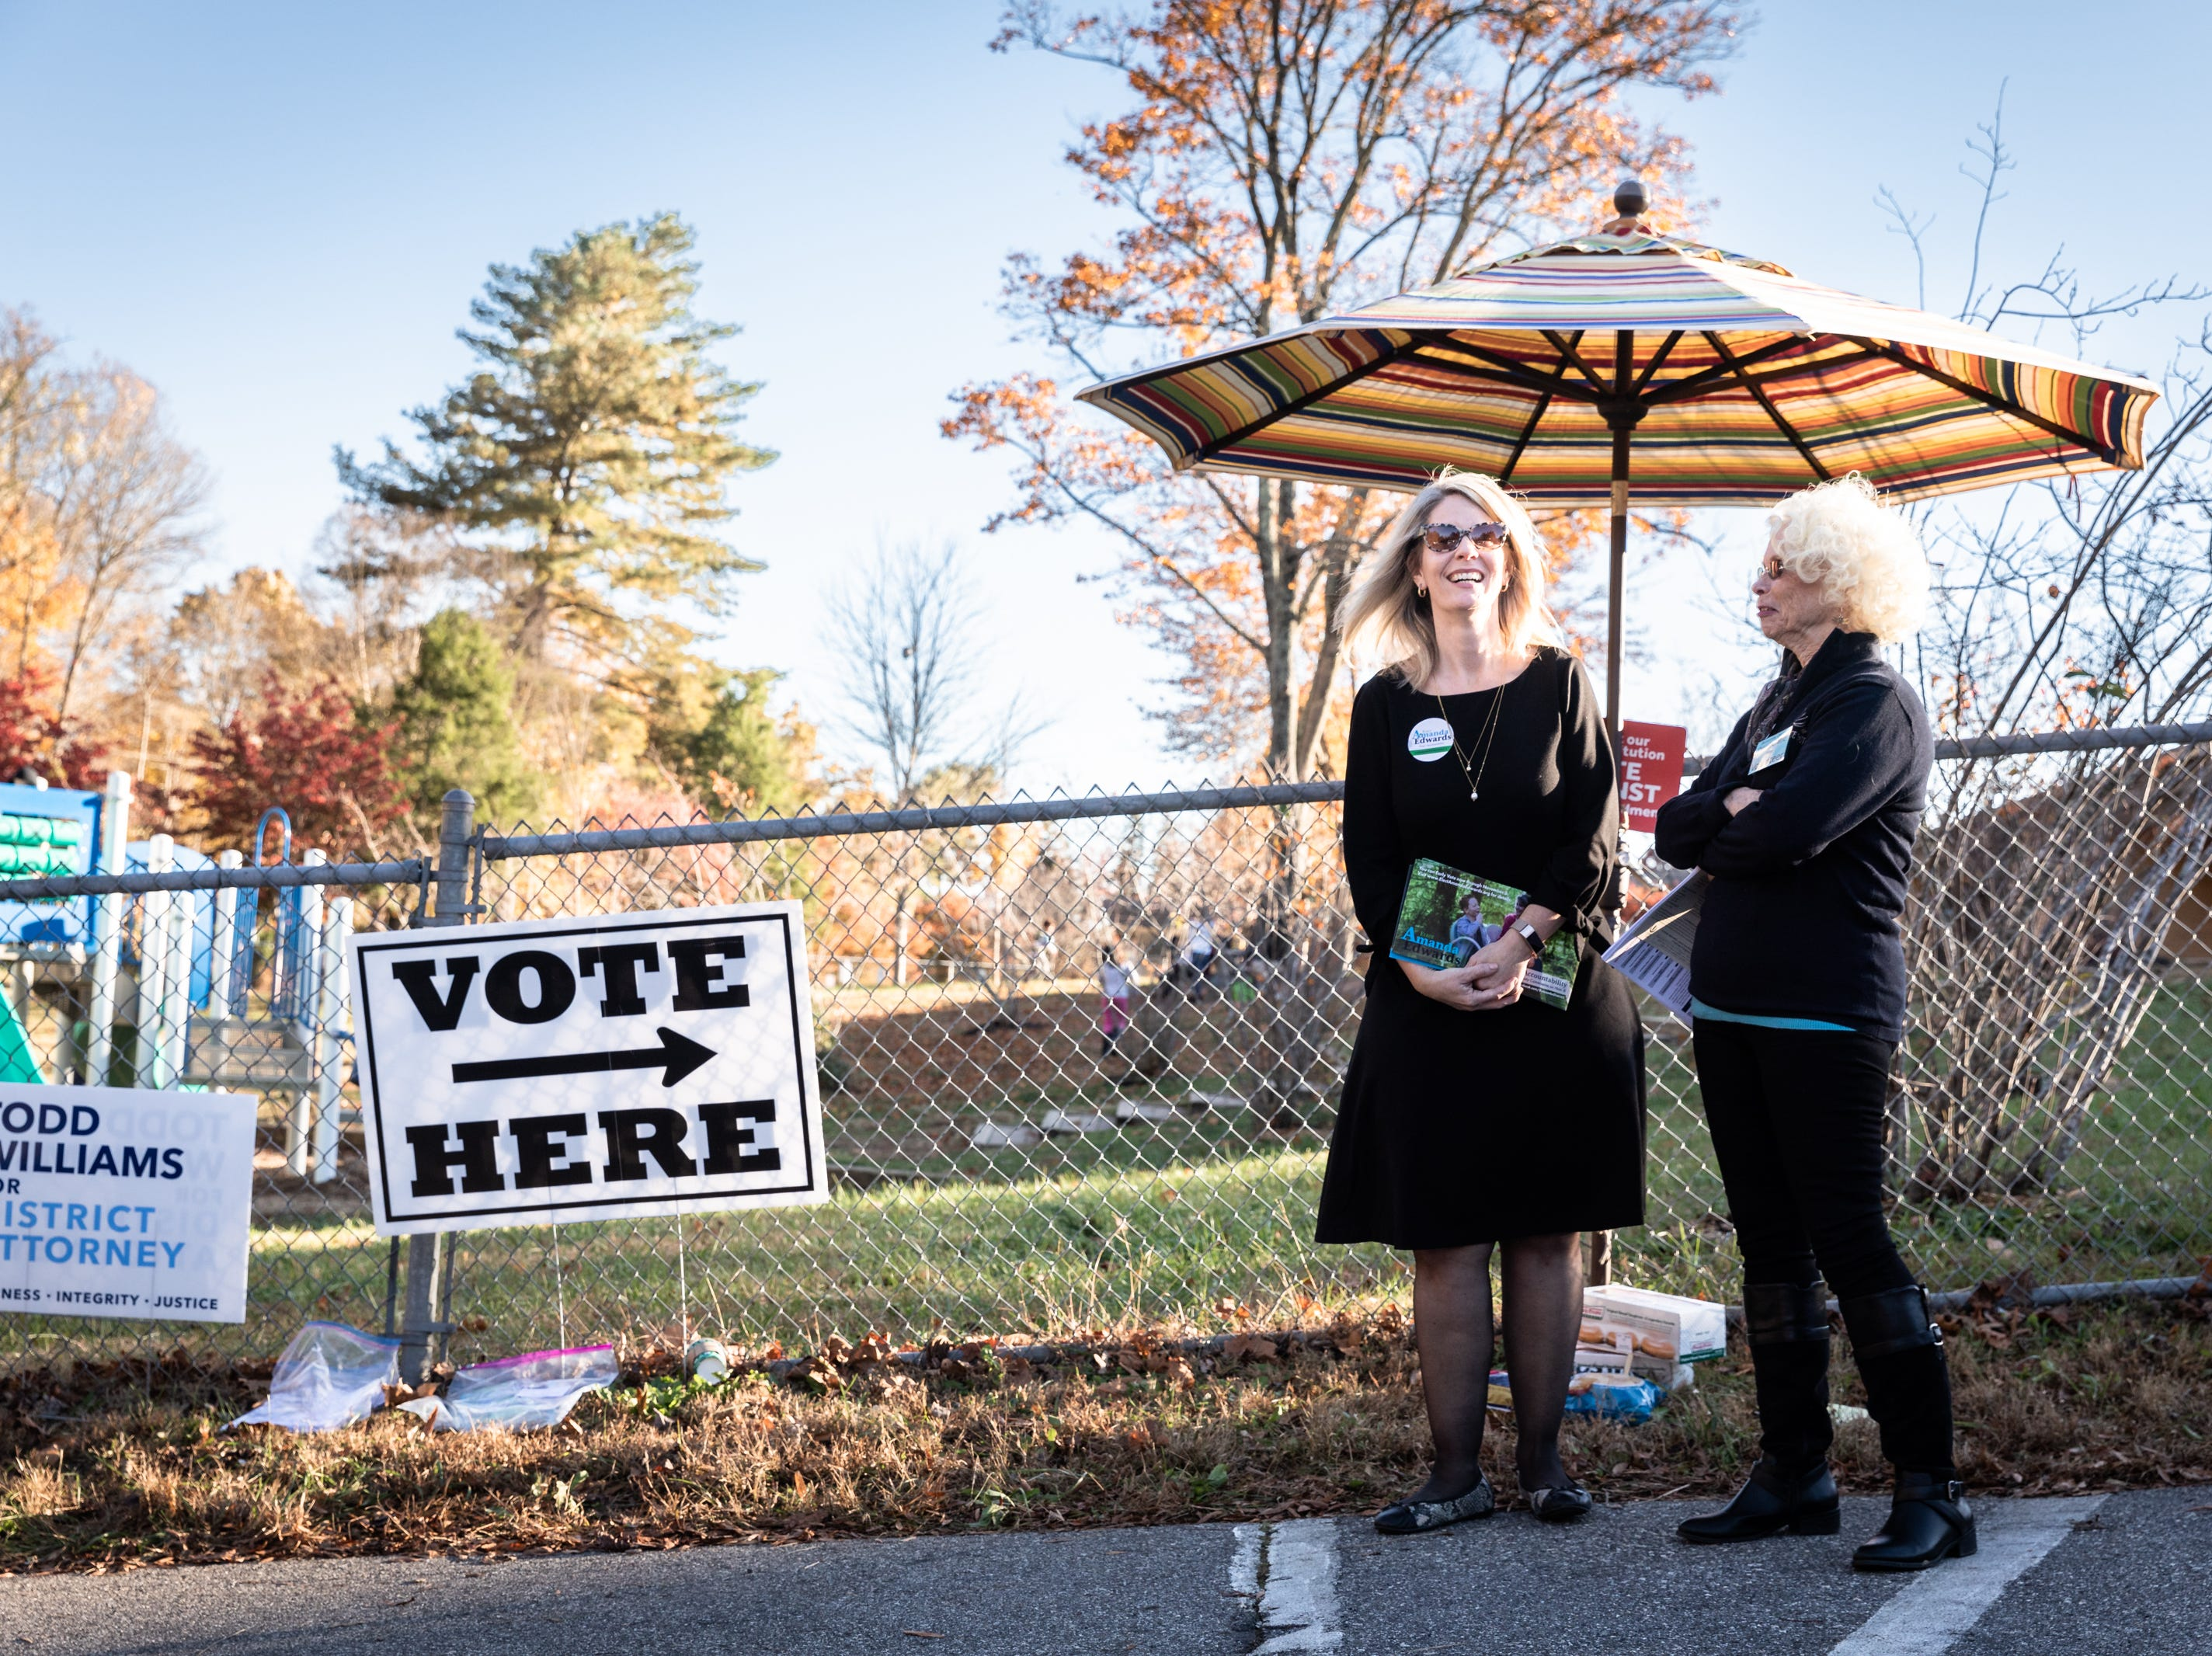 Amanda Edwards, Democratic candidate for the district 2 Buncombe County Commission, talks with Beverly Kimble, a volunteer with the Buncombe county Democratic Party and the precinct chair of 22.2 at Ira B. Jones elementary school, one of the midterm election voting sites, Nov. 6, 2018.